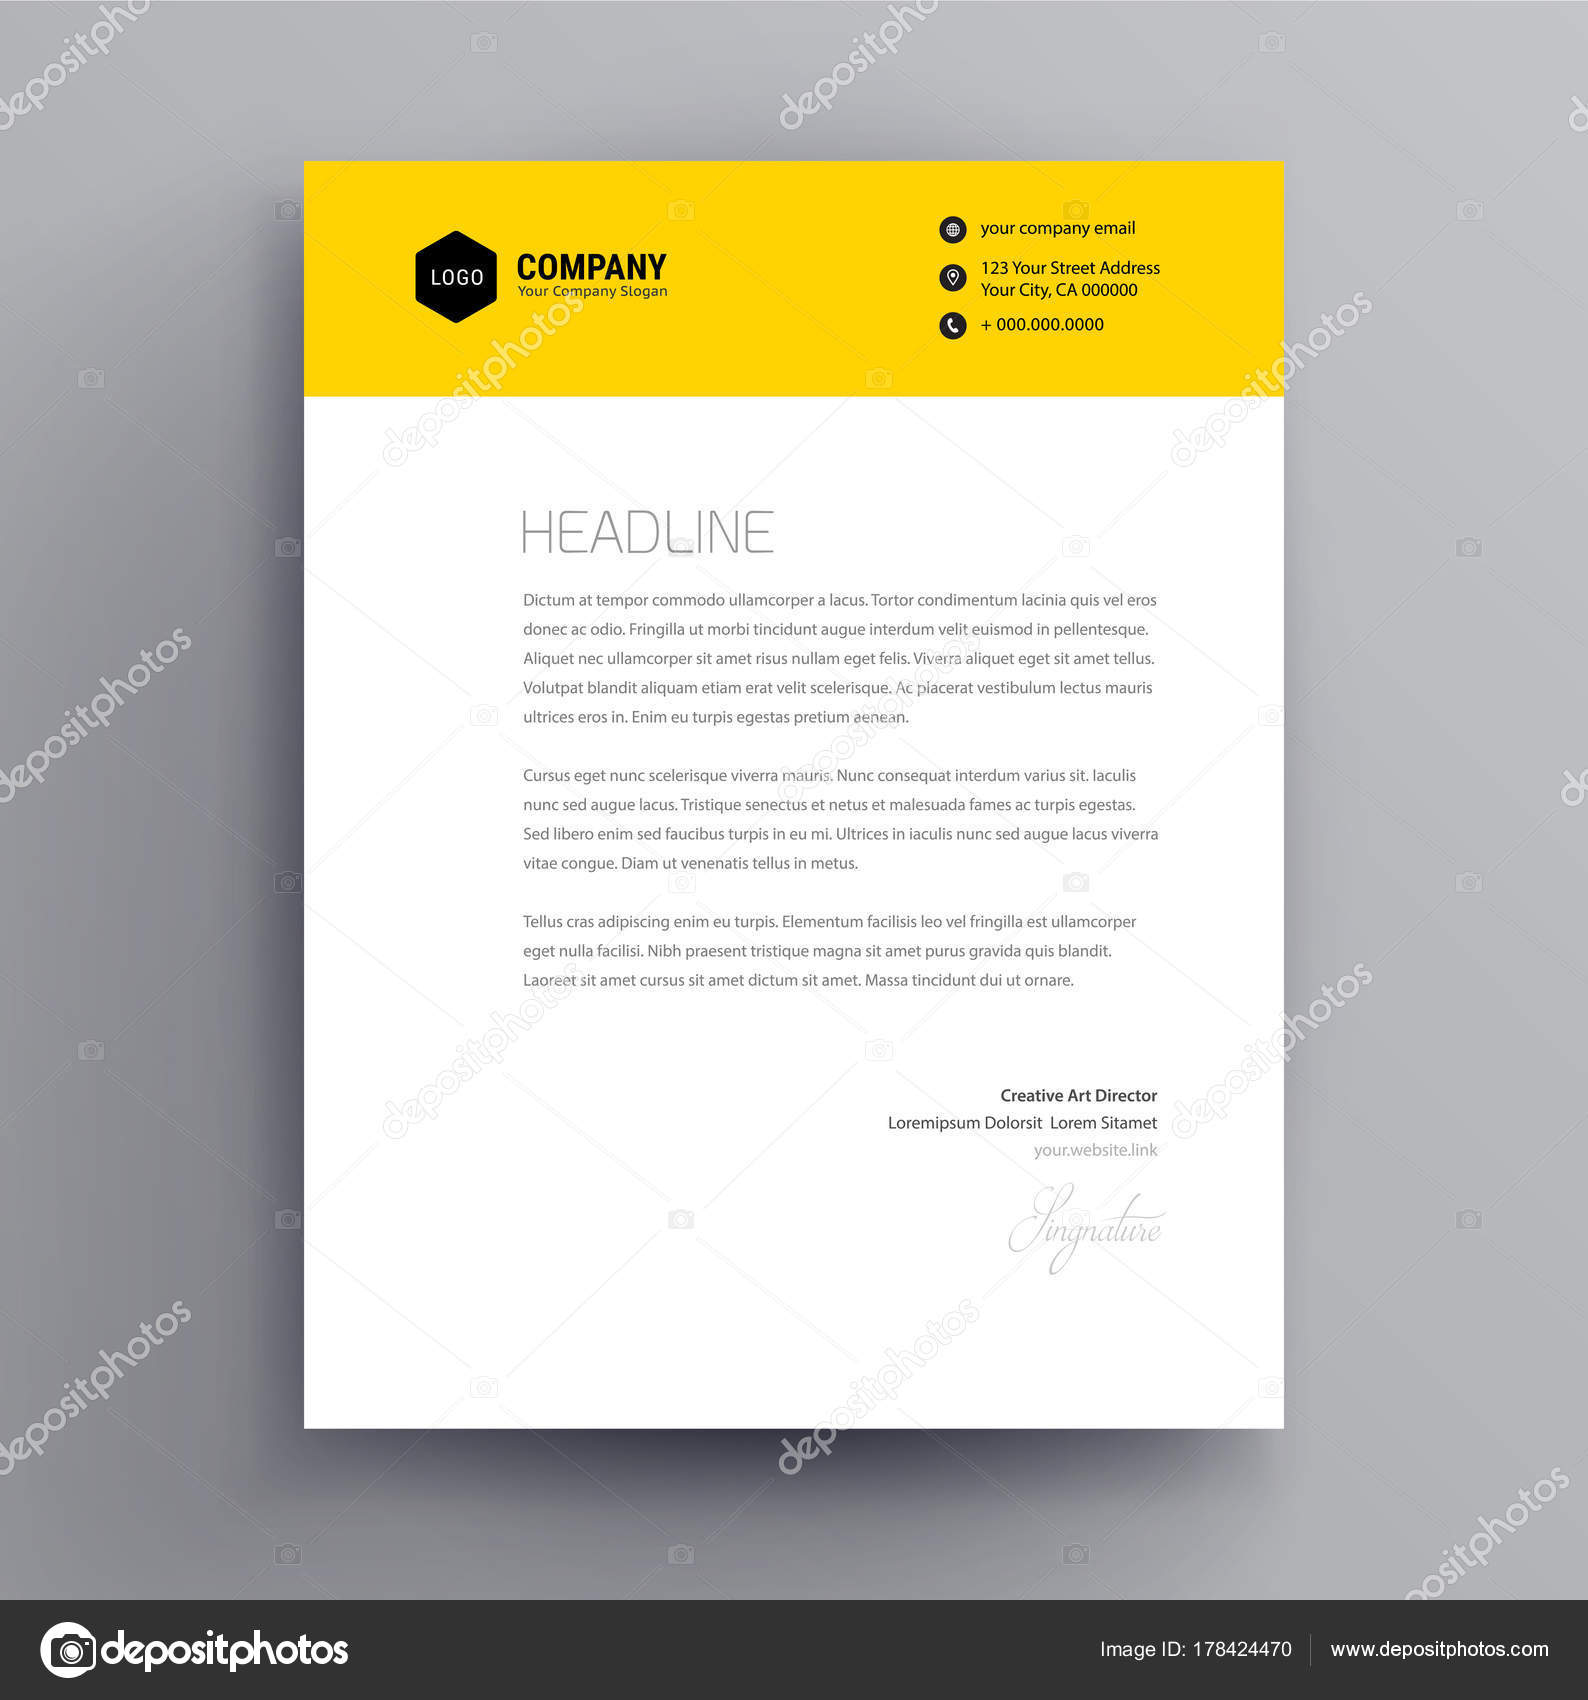 Letterhead design template and mockup minimalist style vector letterhead design template and mockup minimalist style vector stock vector spiritdancerdesigns Image collections